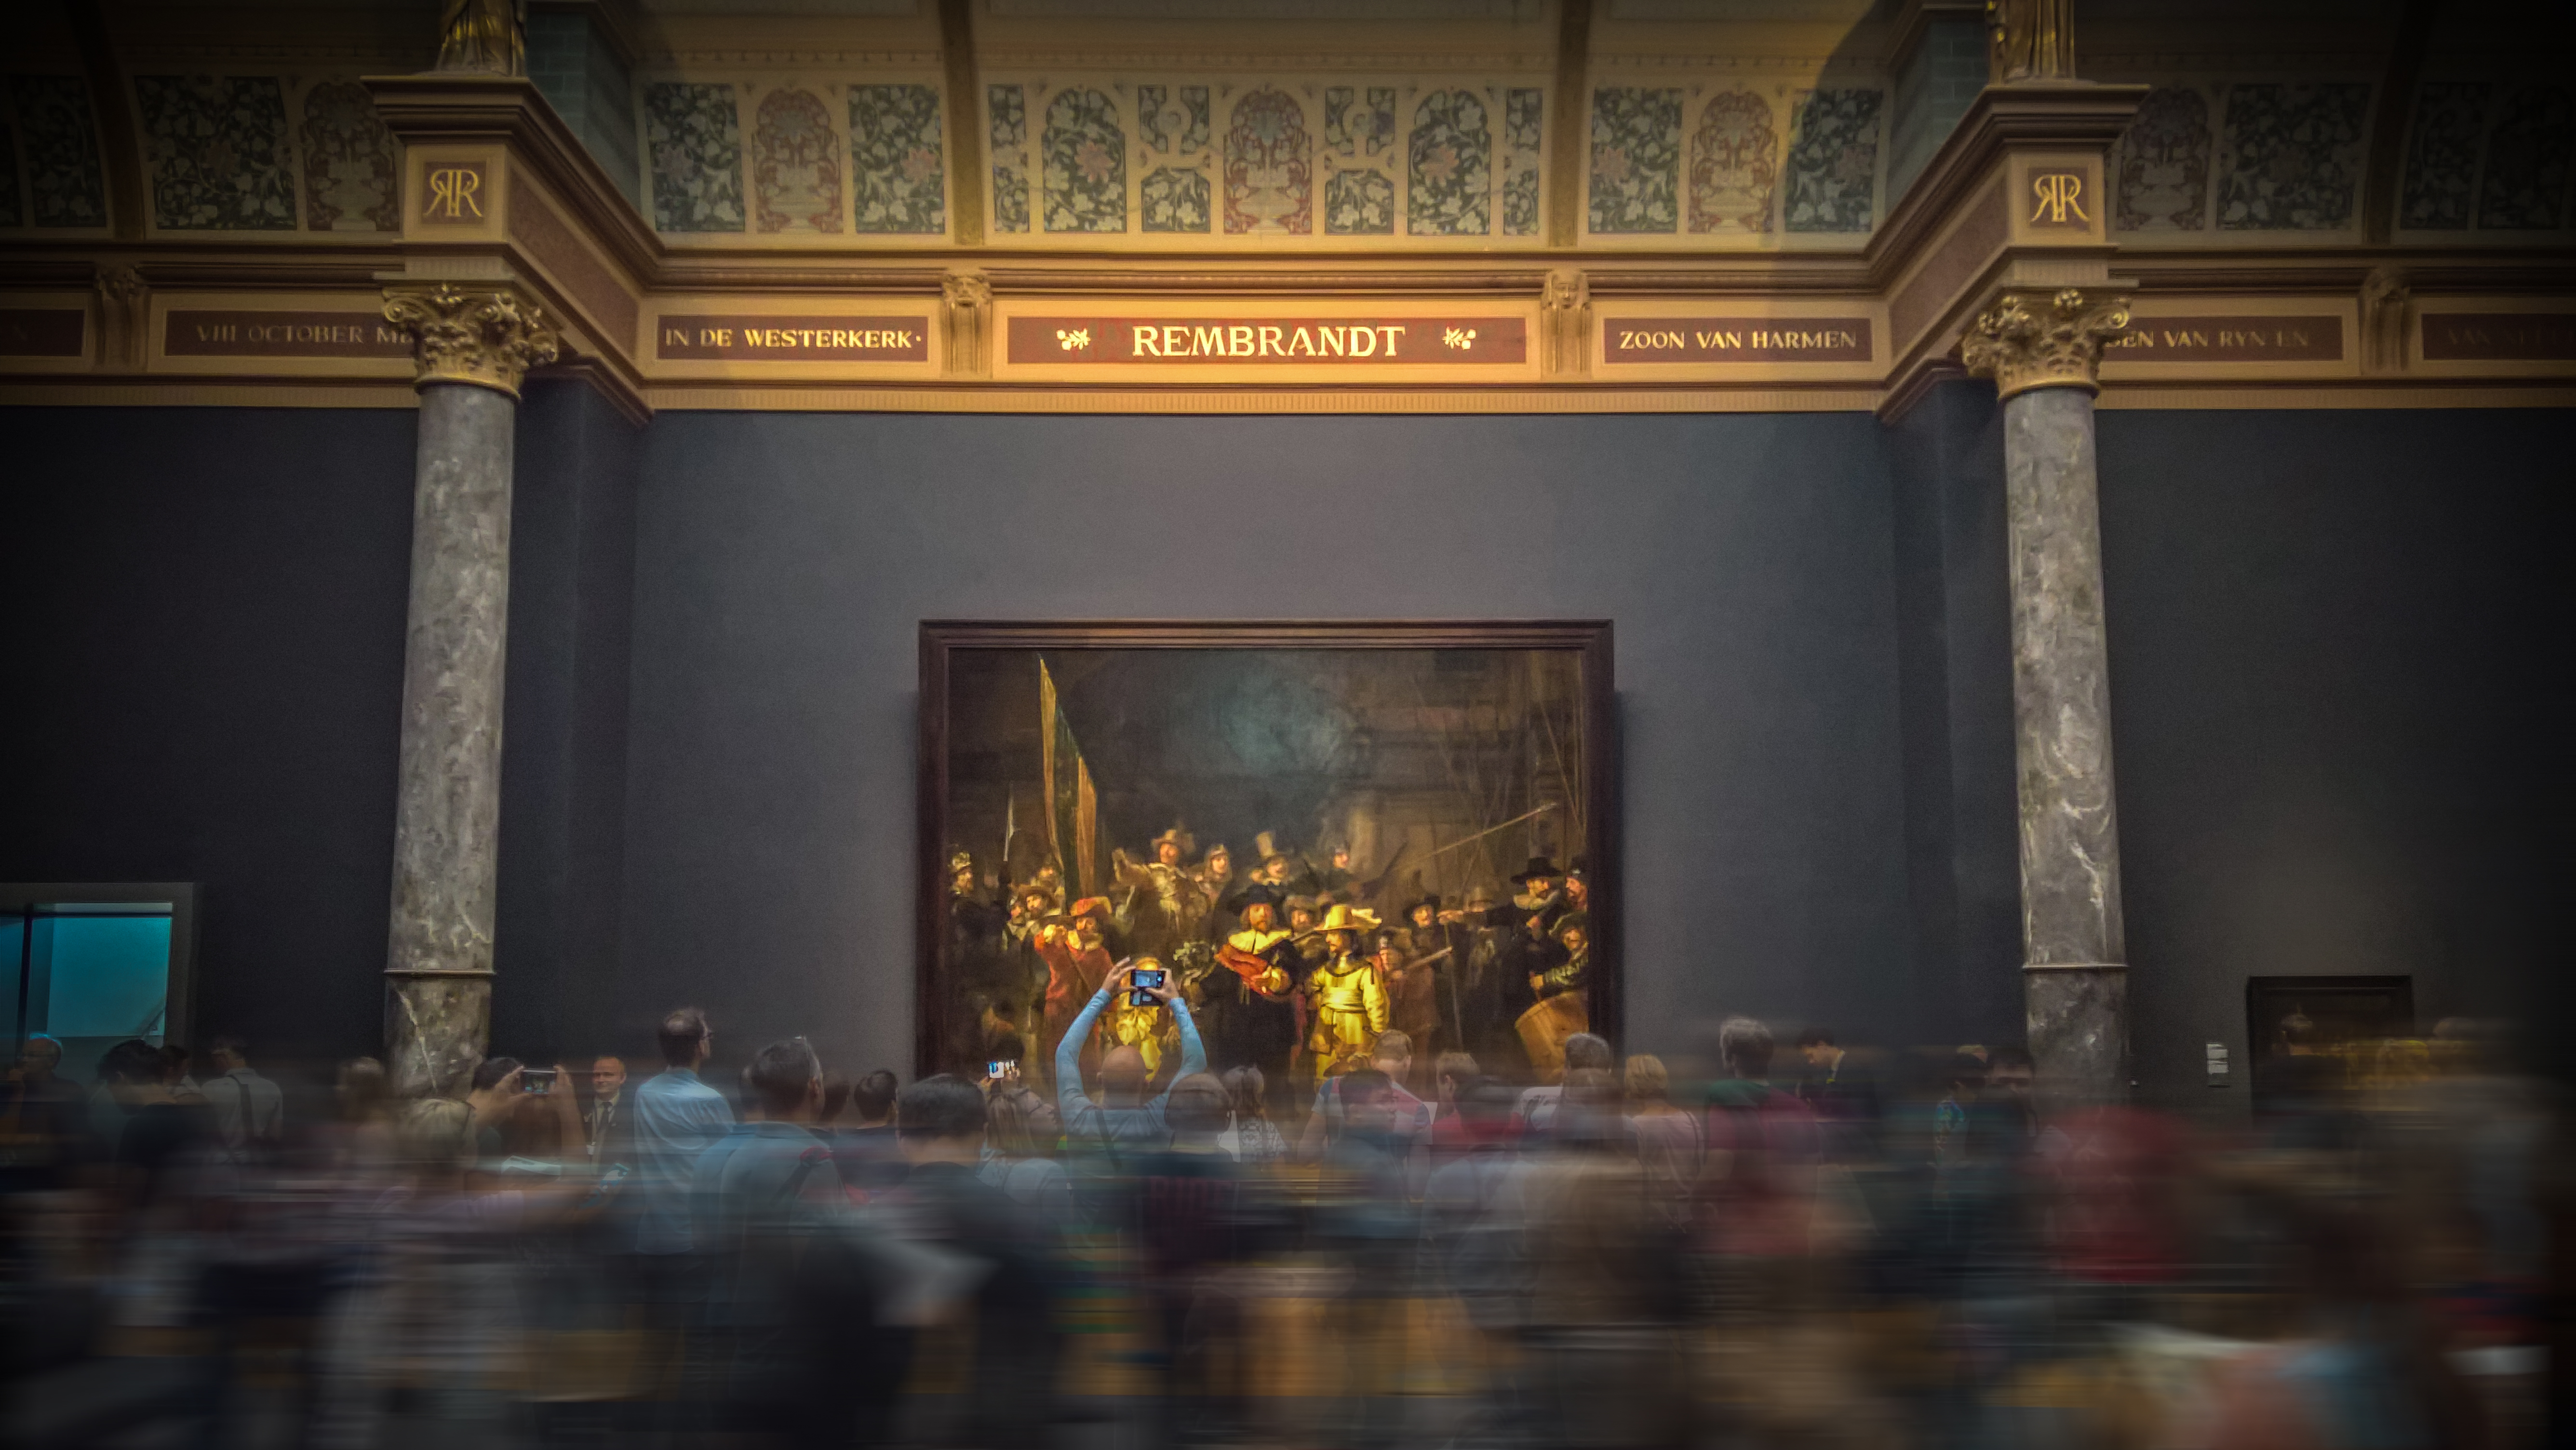 Rembrandt Painting Repaired by AI